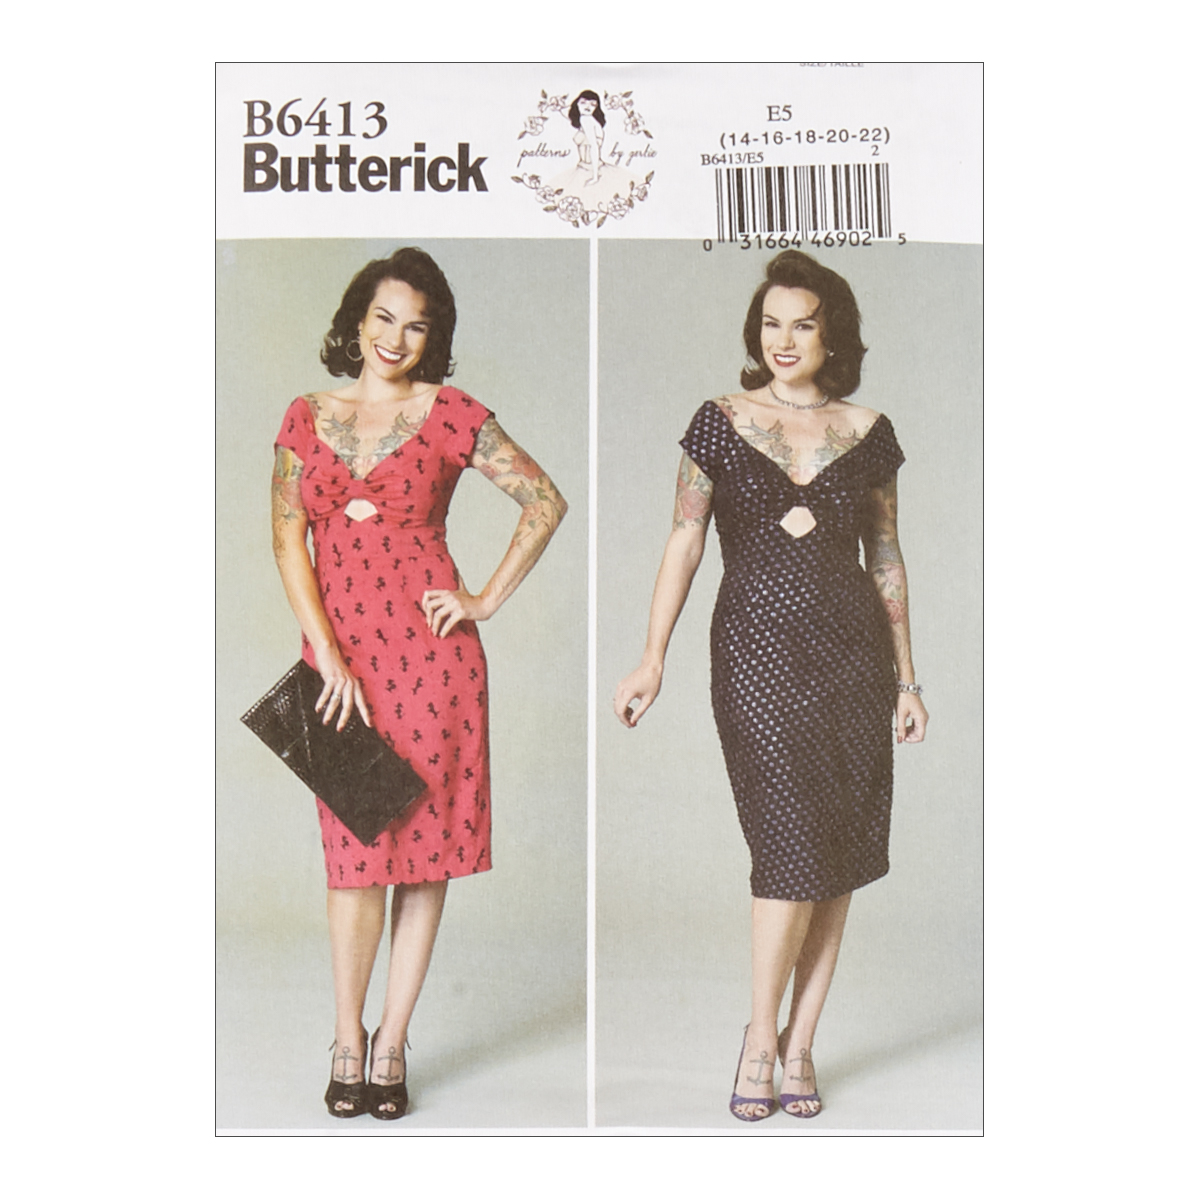 1960s – 70s Sewing Patterns- Dresses, Tops, Pants Butterick B6413 Patterns by Gertie Misses Gathered-Front Keyhole Dress E5 Sizes 14-22 $11.97 AT vintagedancer.com